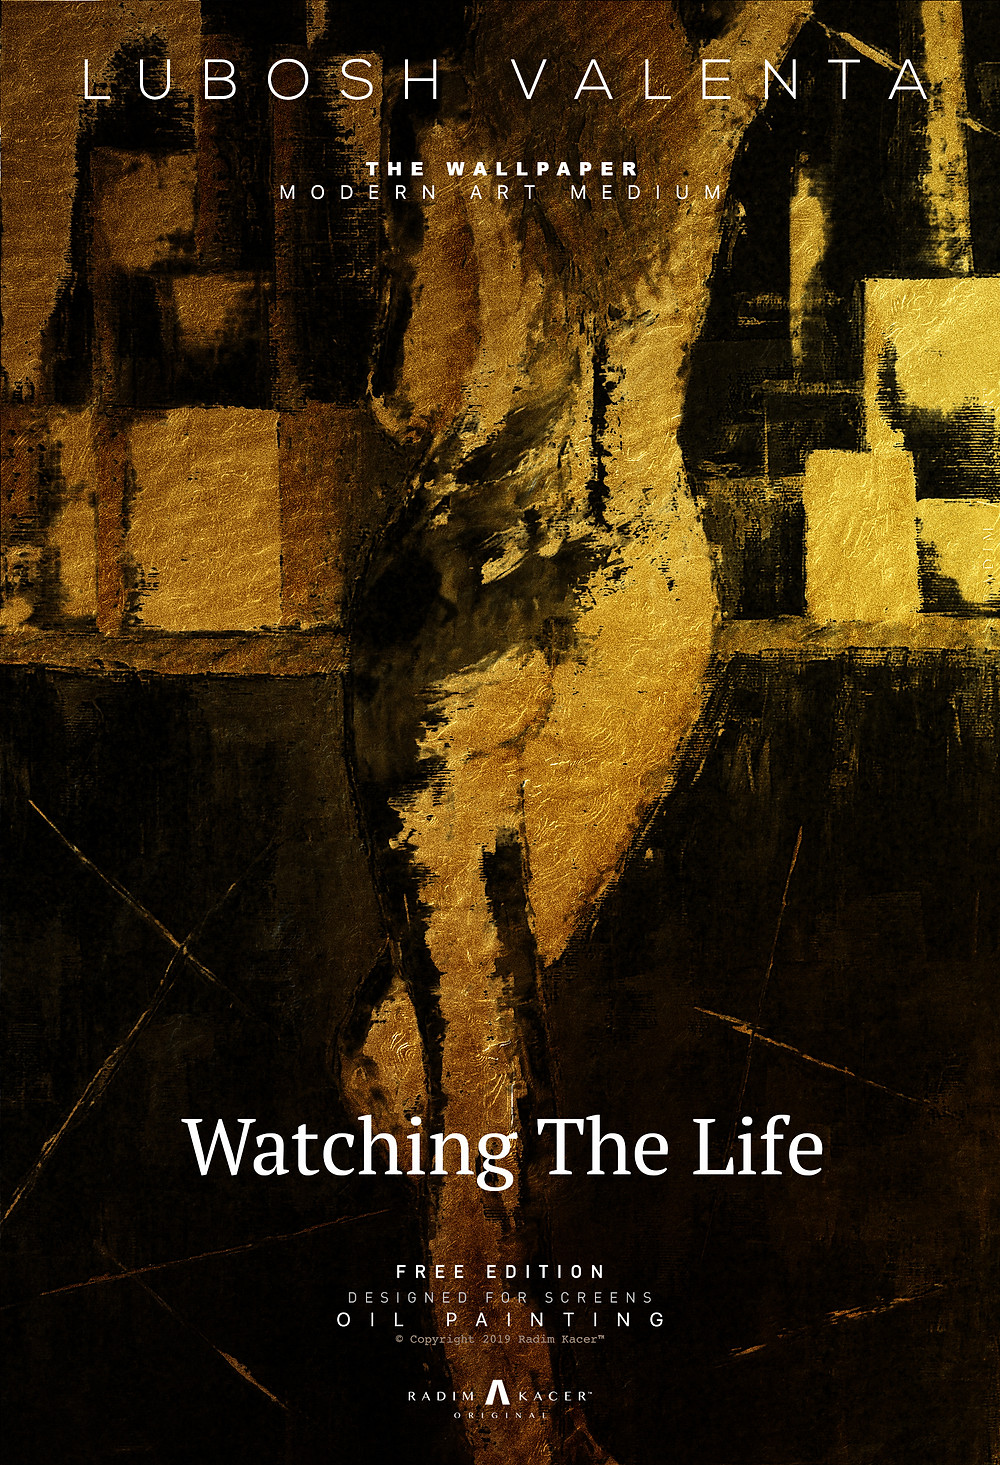 Lubosh Valenta - Watching The Life, Oil painting wallpaper